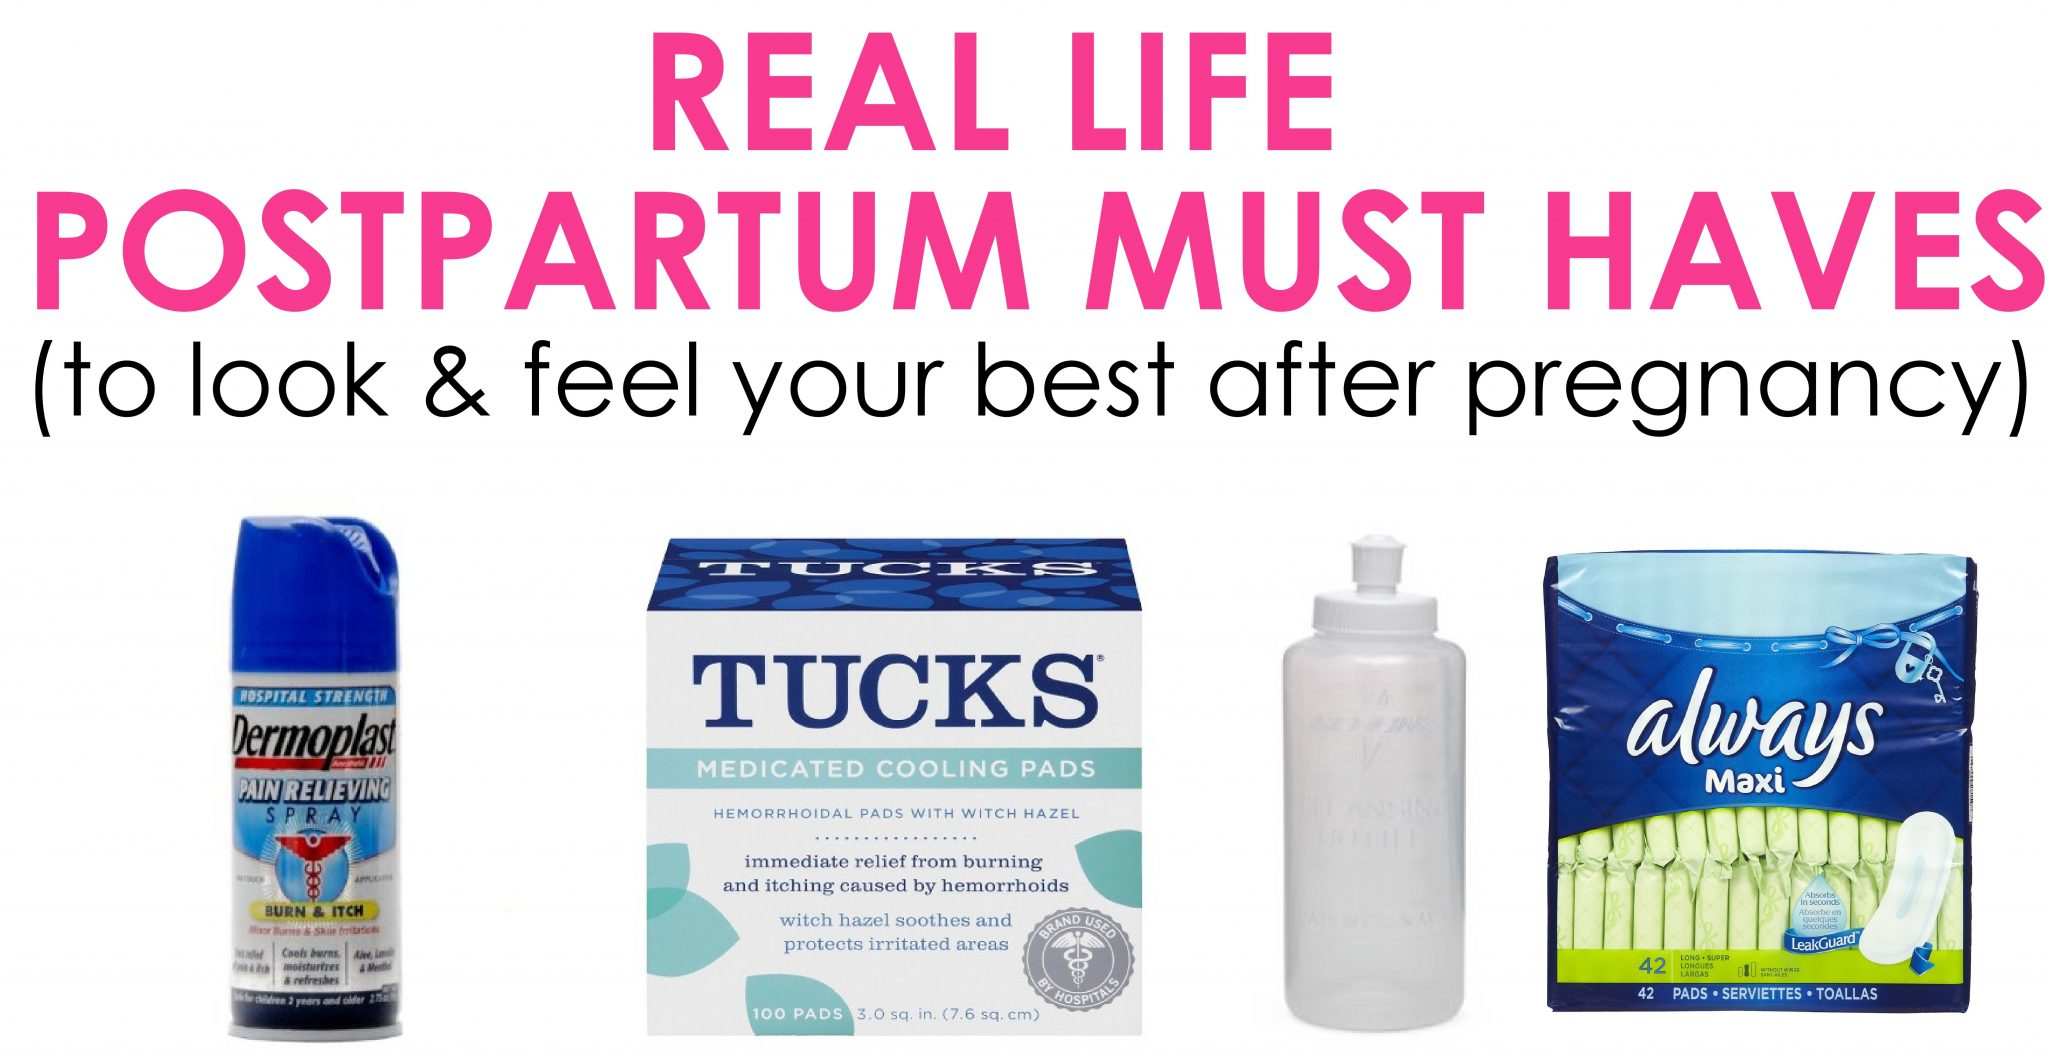 Postpartum Must Haves To Feel Look Your Best After Pregnancy